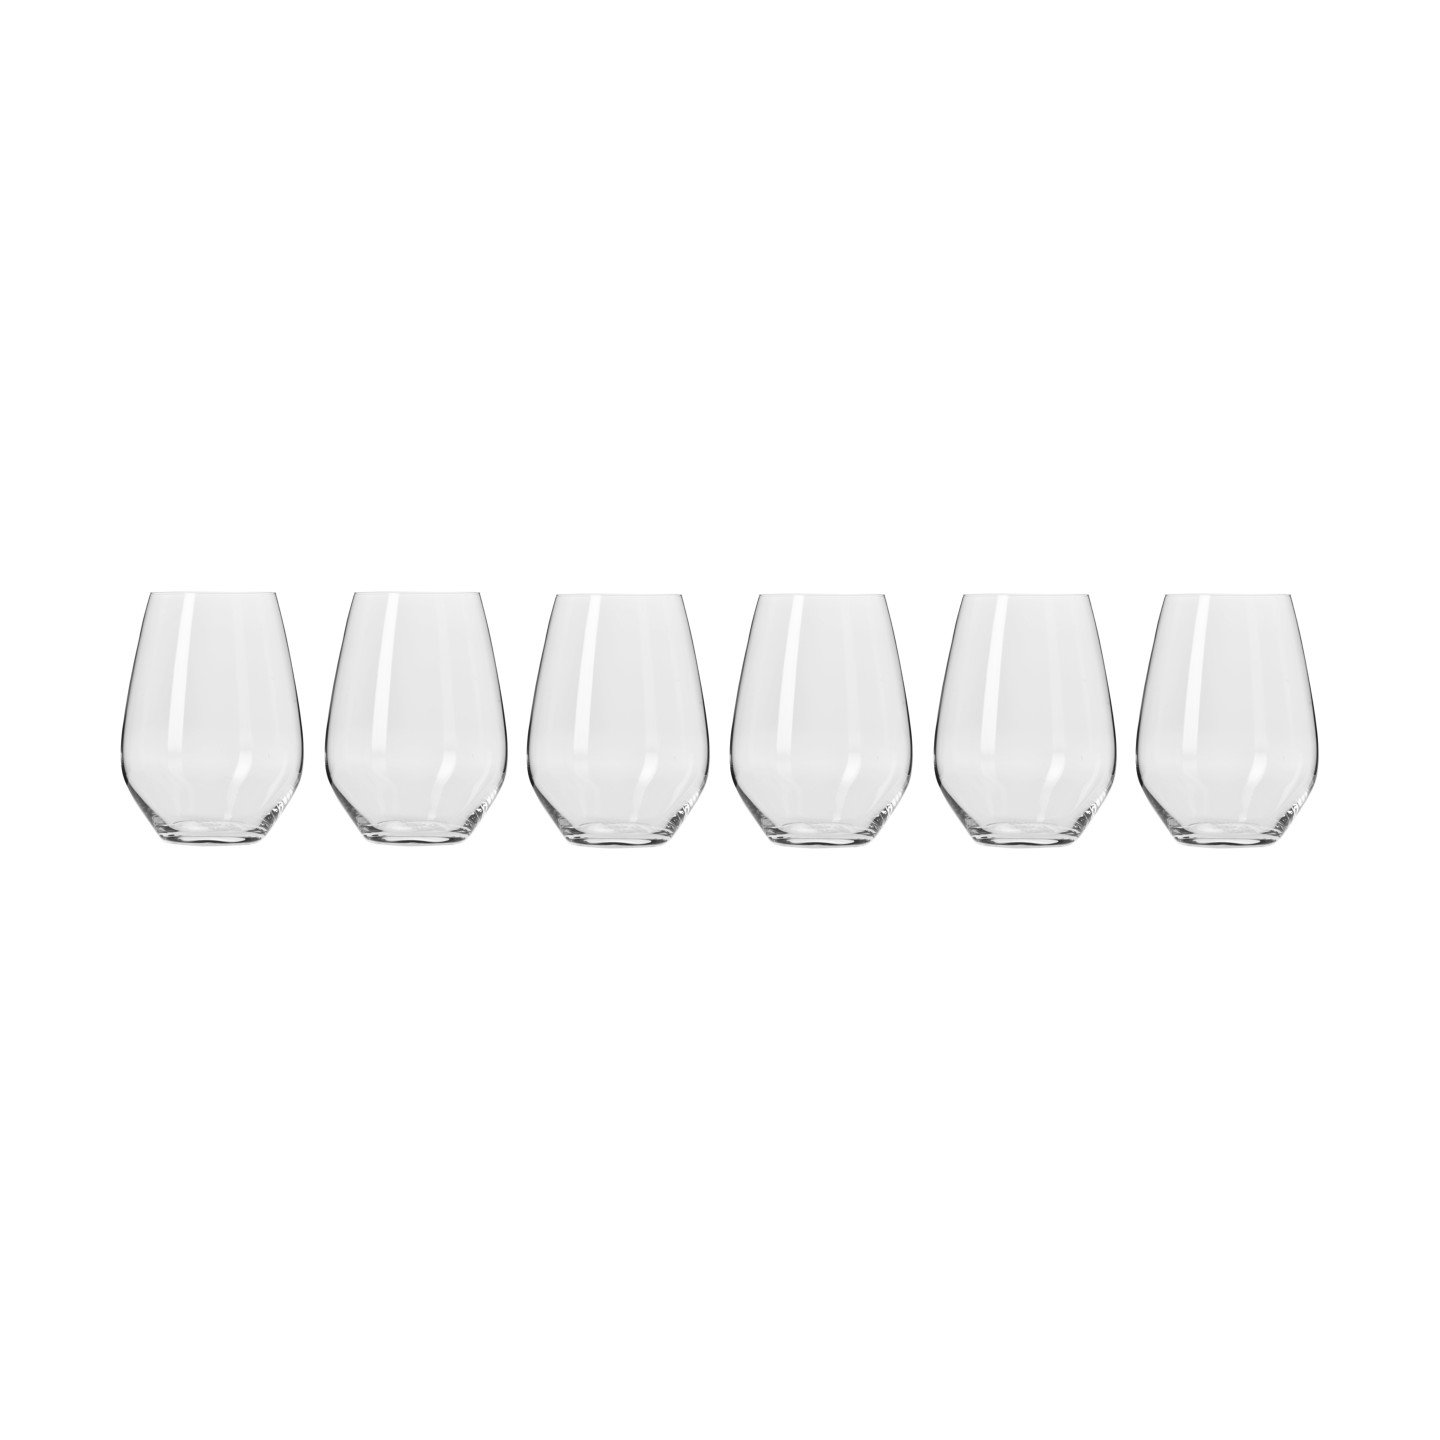 Harmony Steamless Wine Glasses 540ML Set of 6